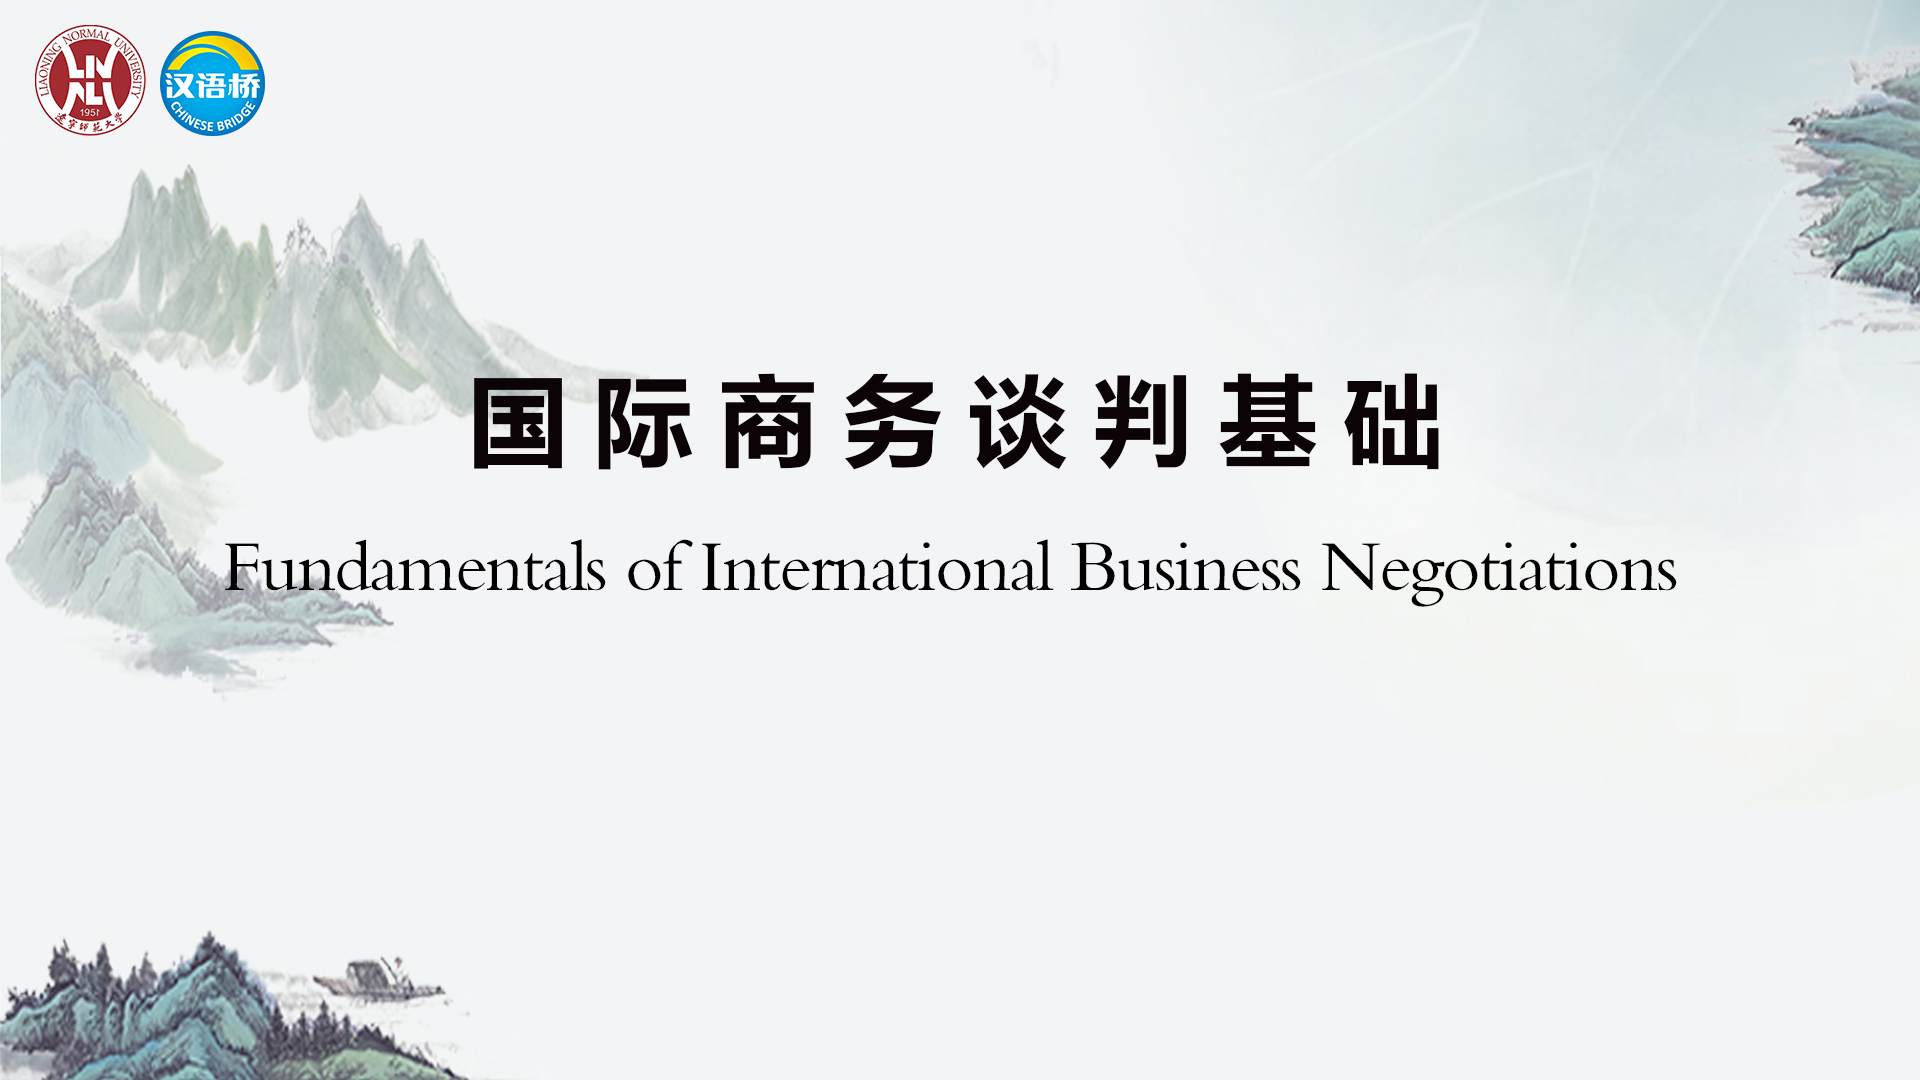 Fundamentals of International Business Negotiations